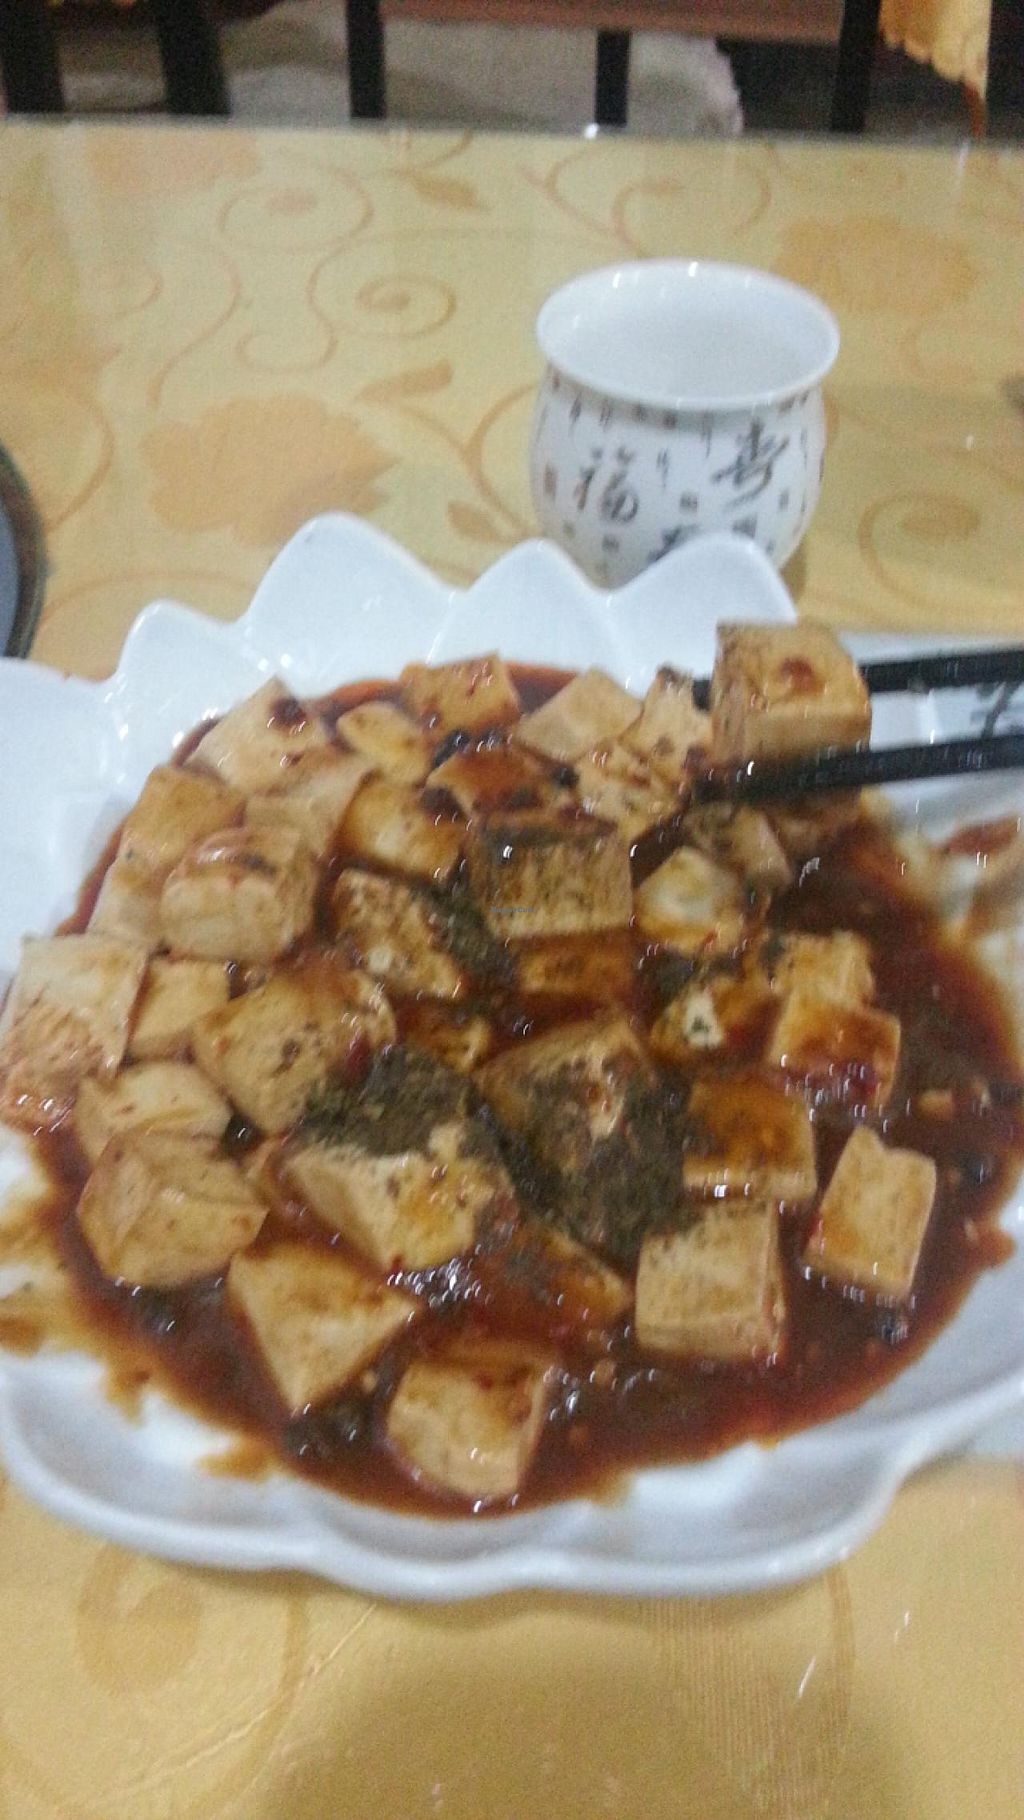 """Photo of Fu Yuan Ge Vegetarian Restaurant  by <a href=""""/members/profile/veganpower1"""">veganpower1</a> <br/>Chili Tofu  <br/> April 23, 2015  - <a href='/contact/abuse/image/18315/100062'>Report</a>"""